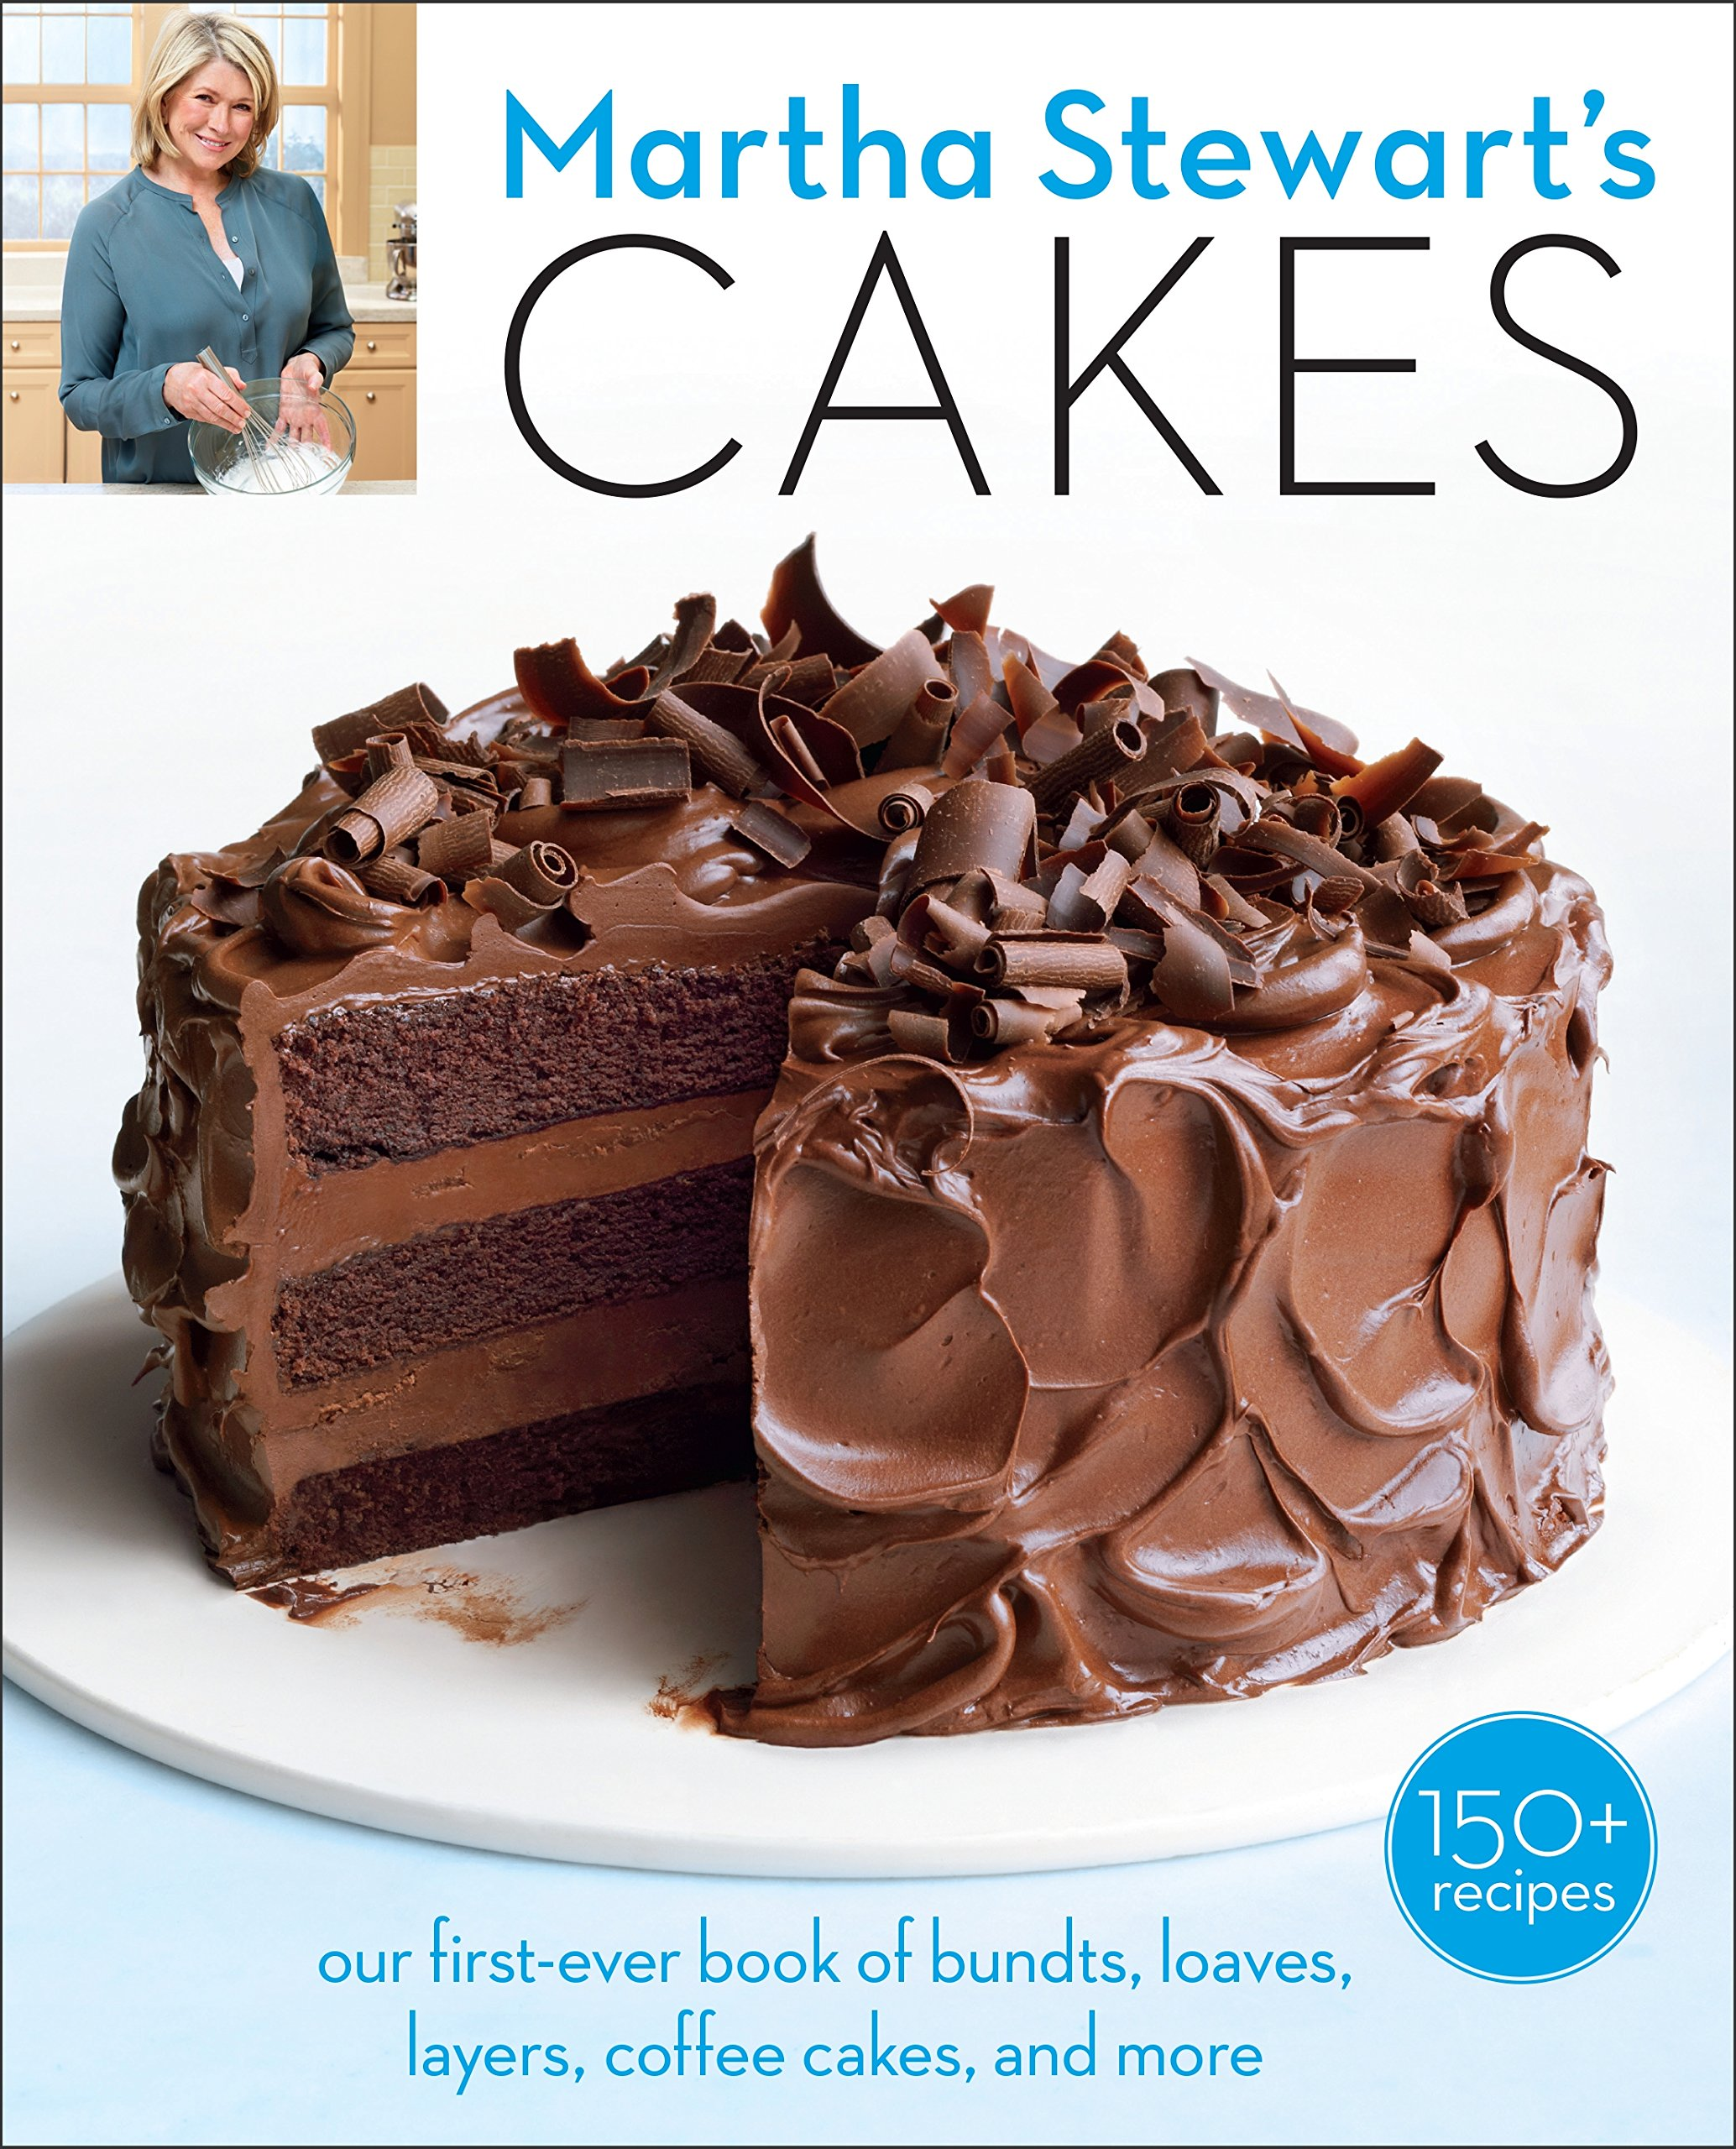 91tXILrUApL - Martha Stewart's Cakes: our first-ever book of bundts, loaves, layers, coffee cakes, and more